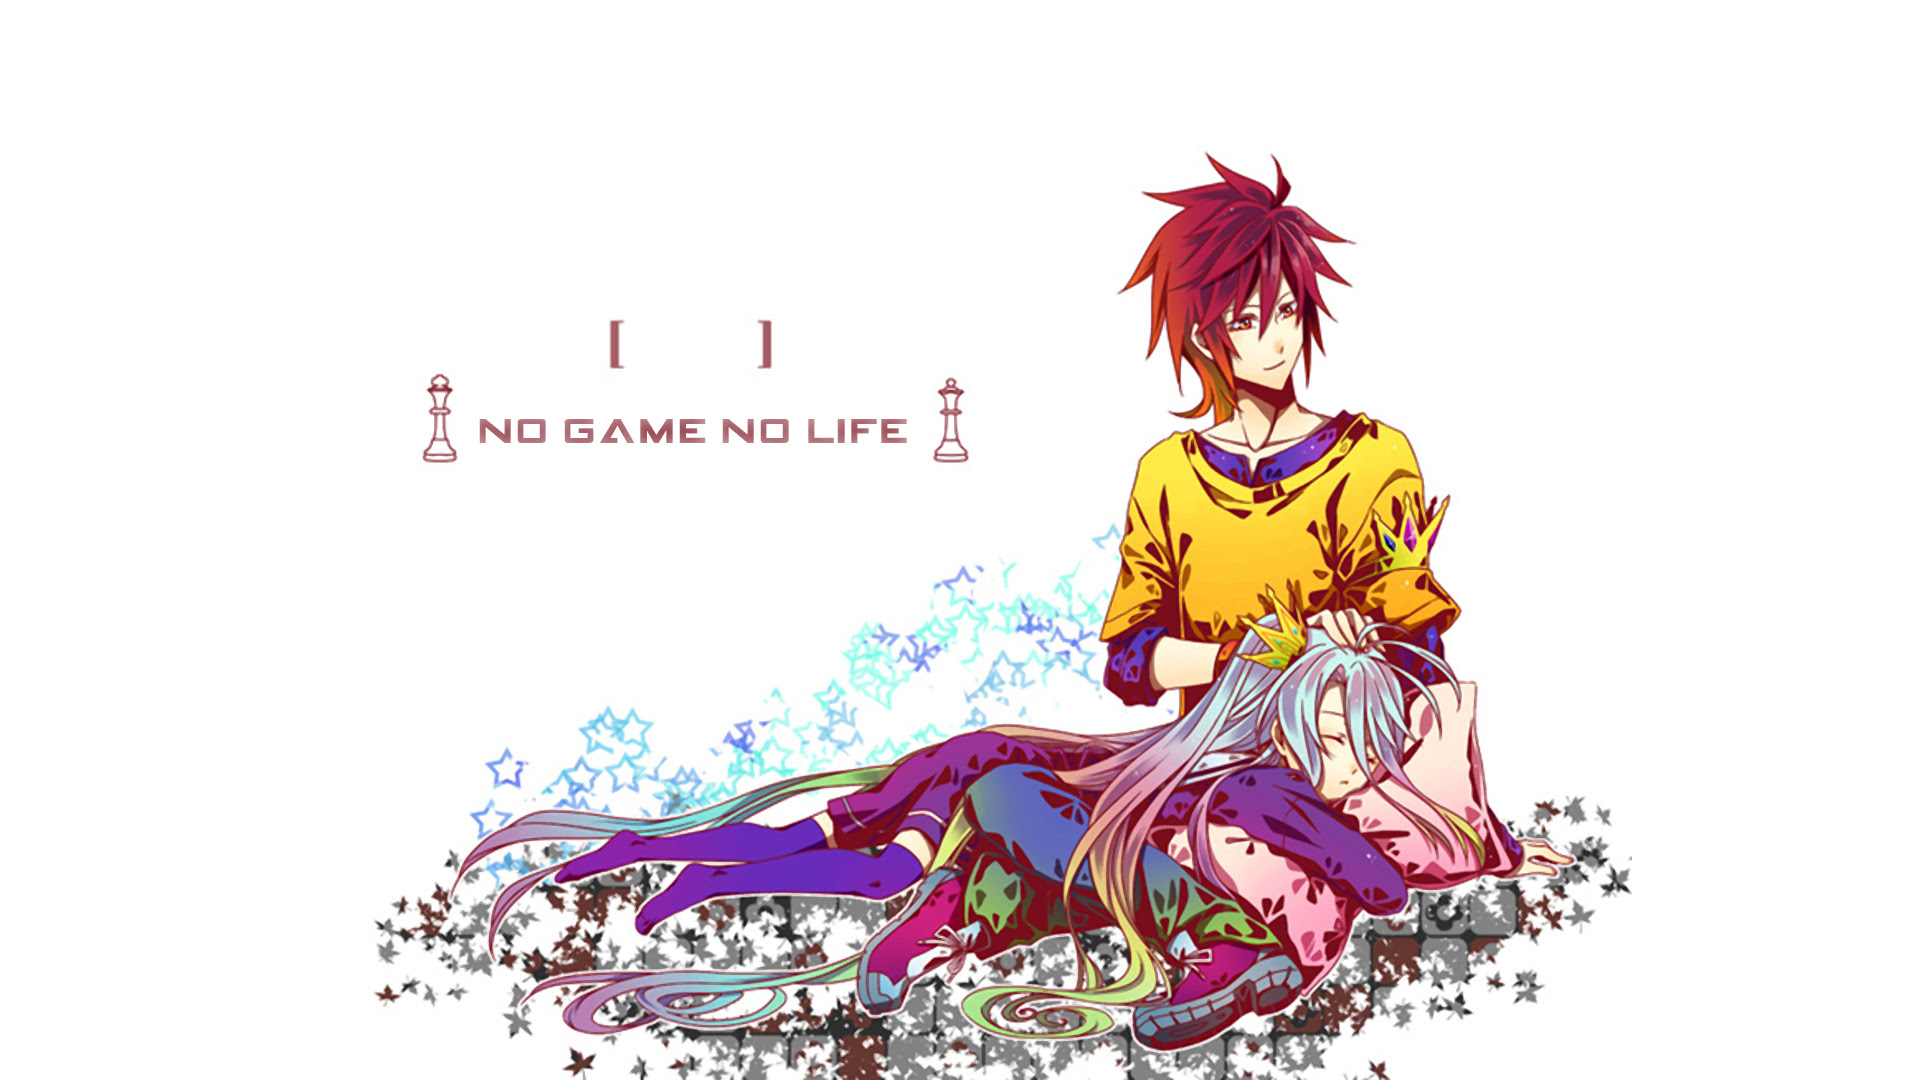 Shiro And Sora No Game No Life Anime Fondo De Pantalla